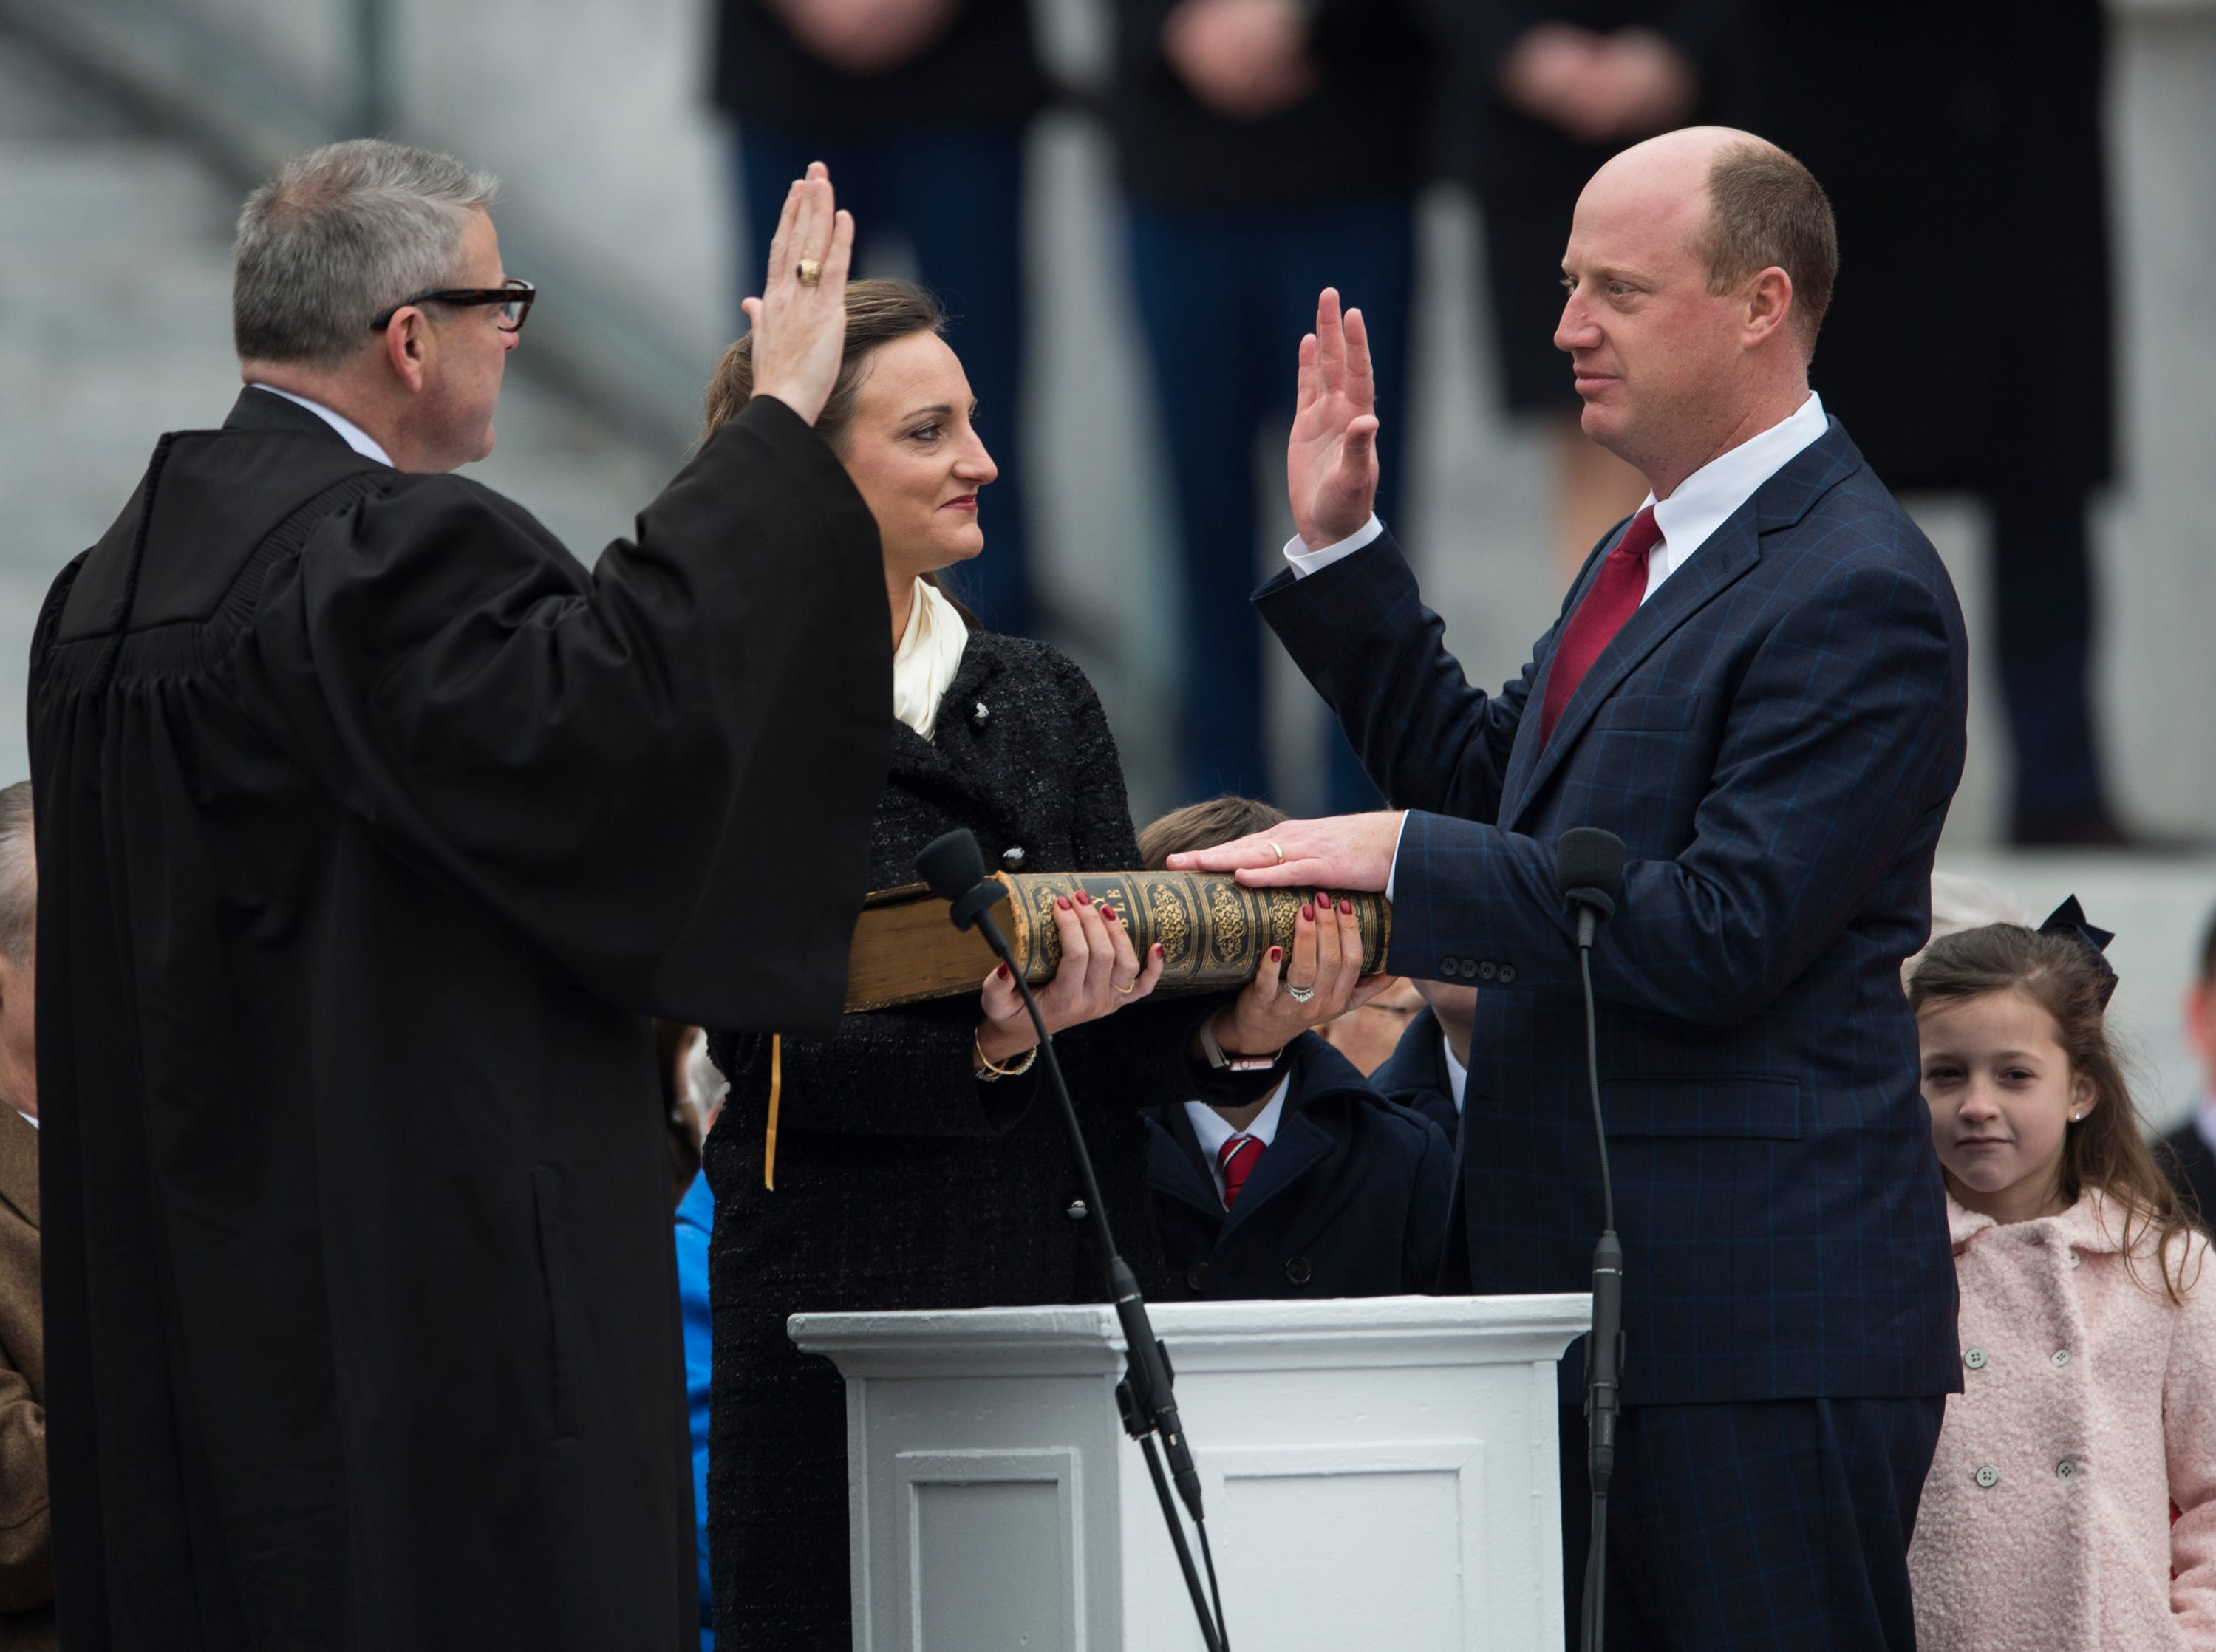 Alabama Lt. Gov. Will Ainsworth is sworn in during Inauguration  Day on the steps of the Alabama State Capitol in Montgomery, Ala., on Monday, Jan. 14, 2019.